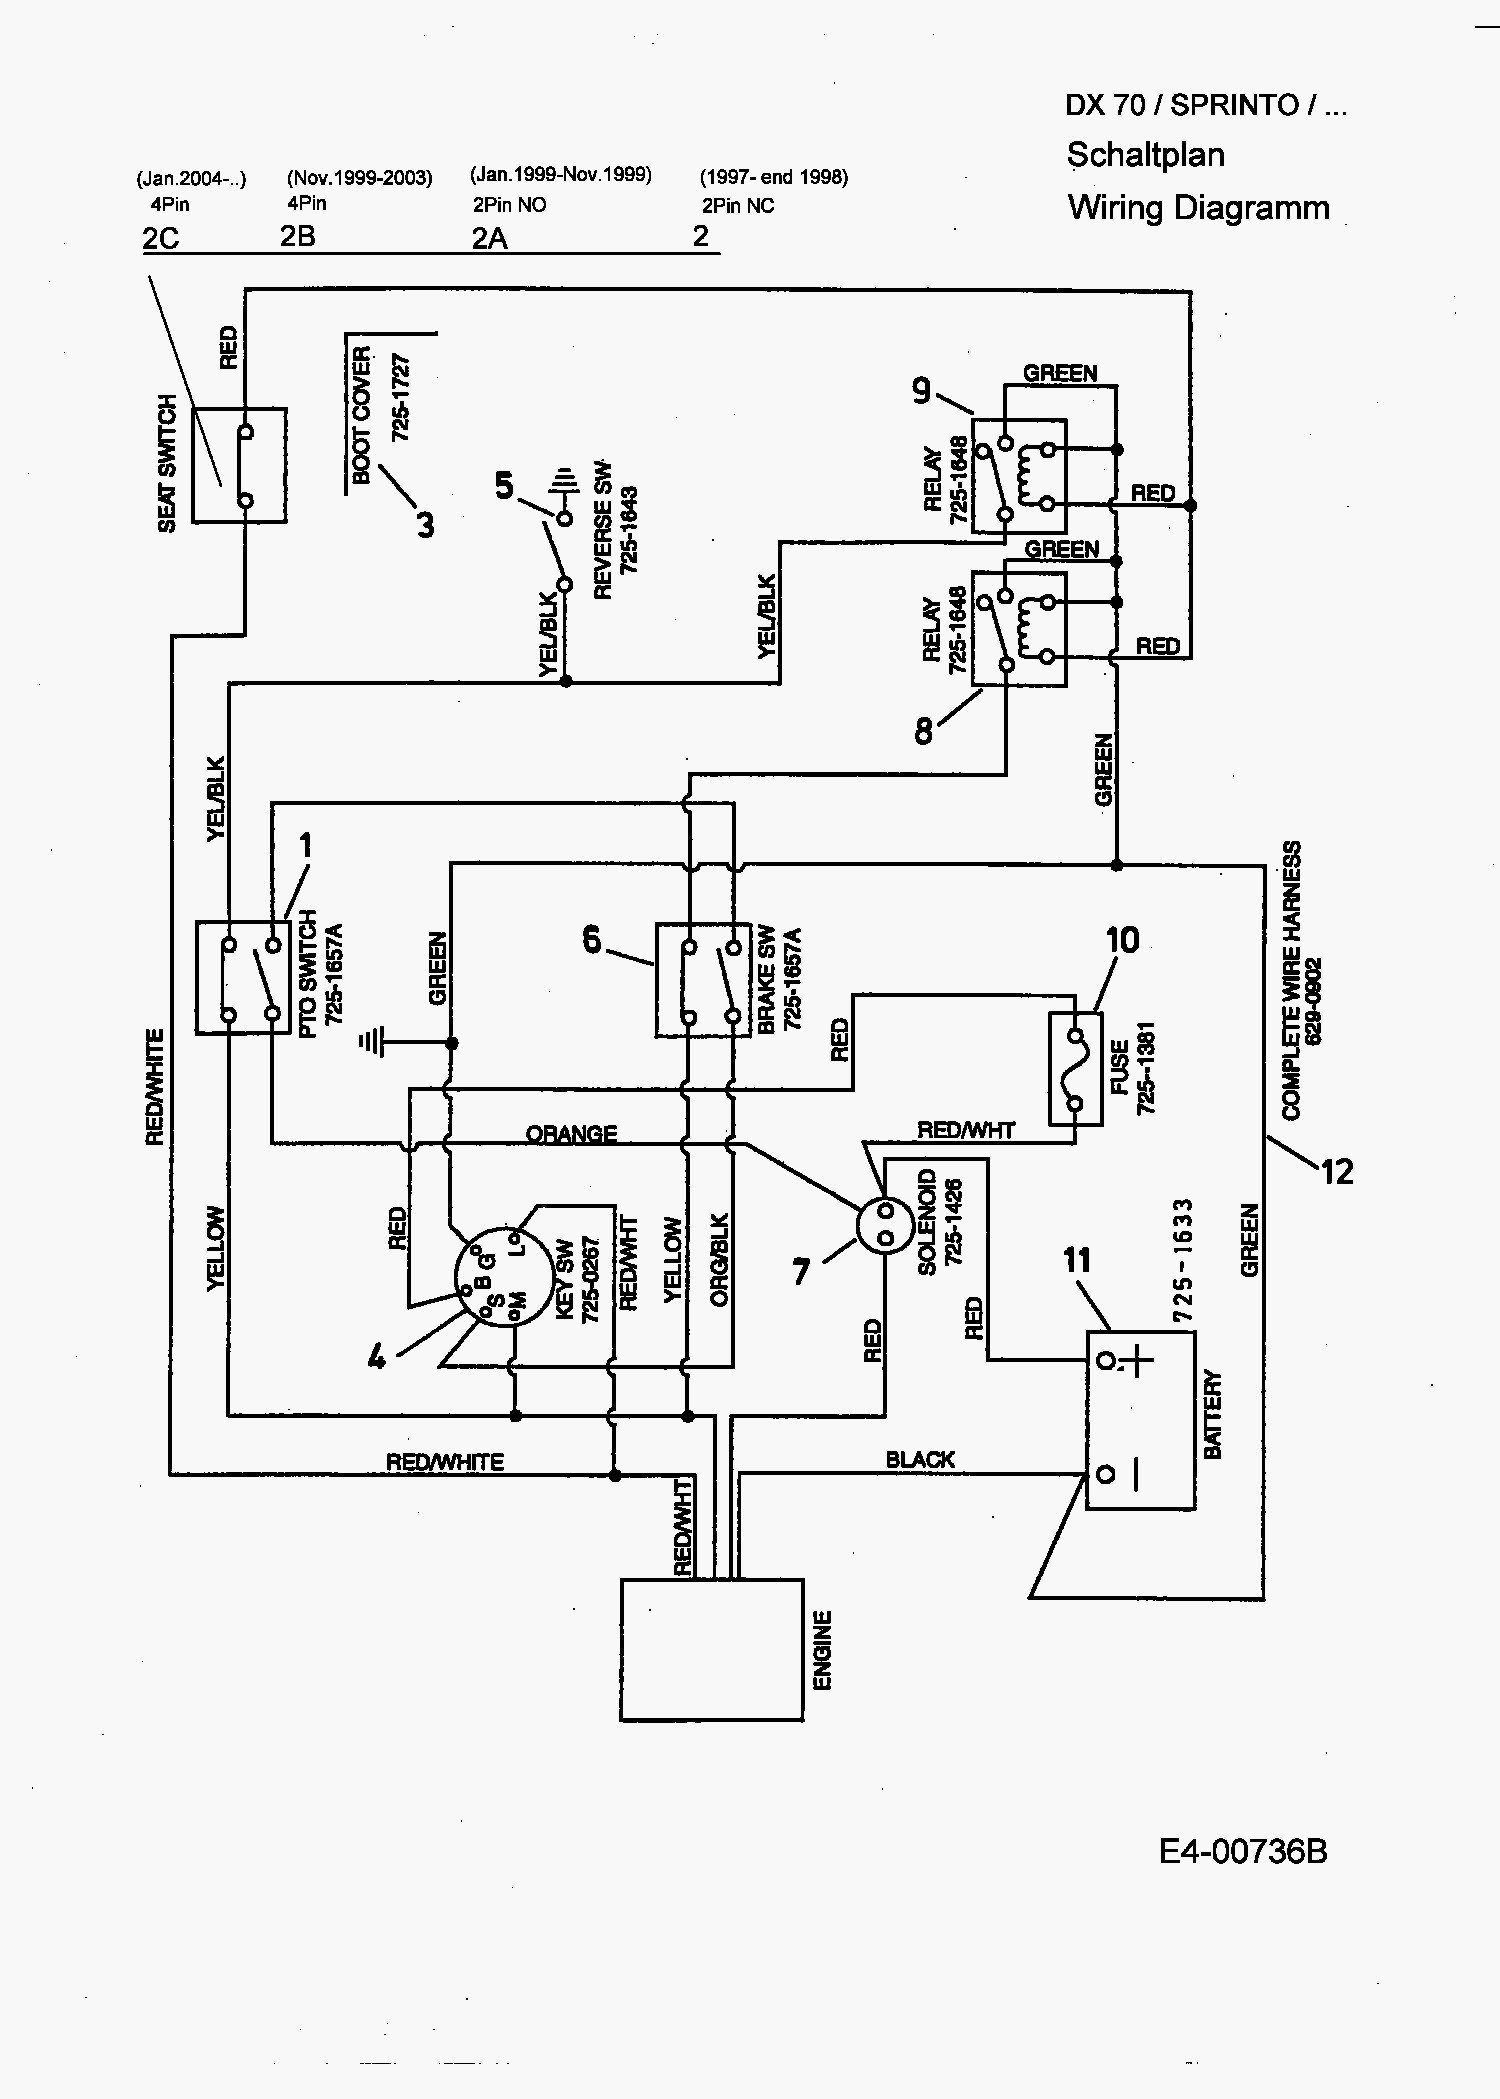 13an662g729 Mtd Wiring Diagram - seniorsclub.it electrical-drown -  electrical-drown.seniorsclub.it | White Lawn Tractor Wiring Diagram |  | electrical-drown.seniorsclub.it